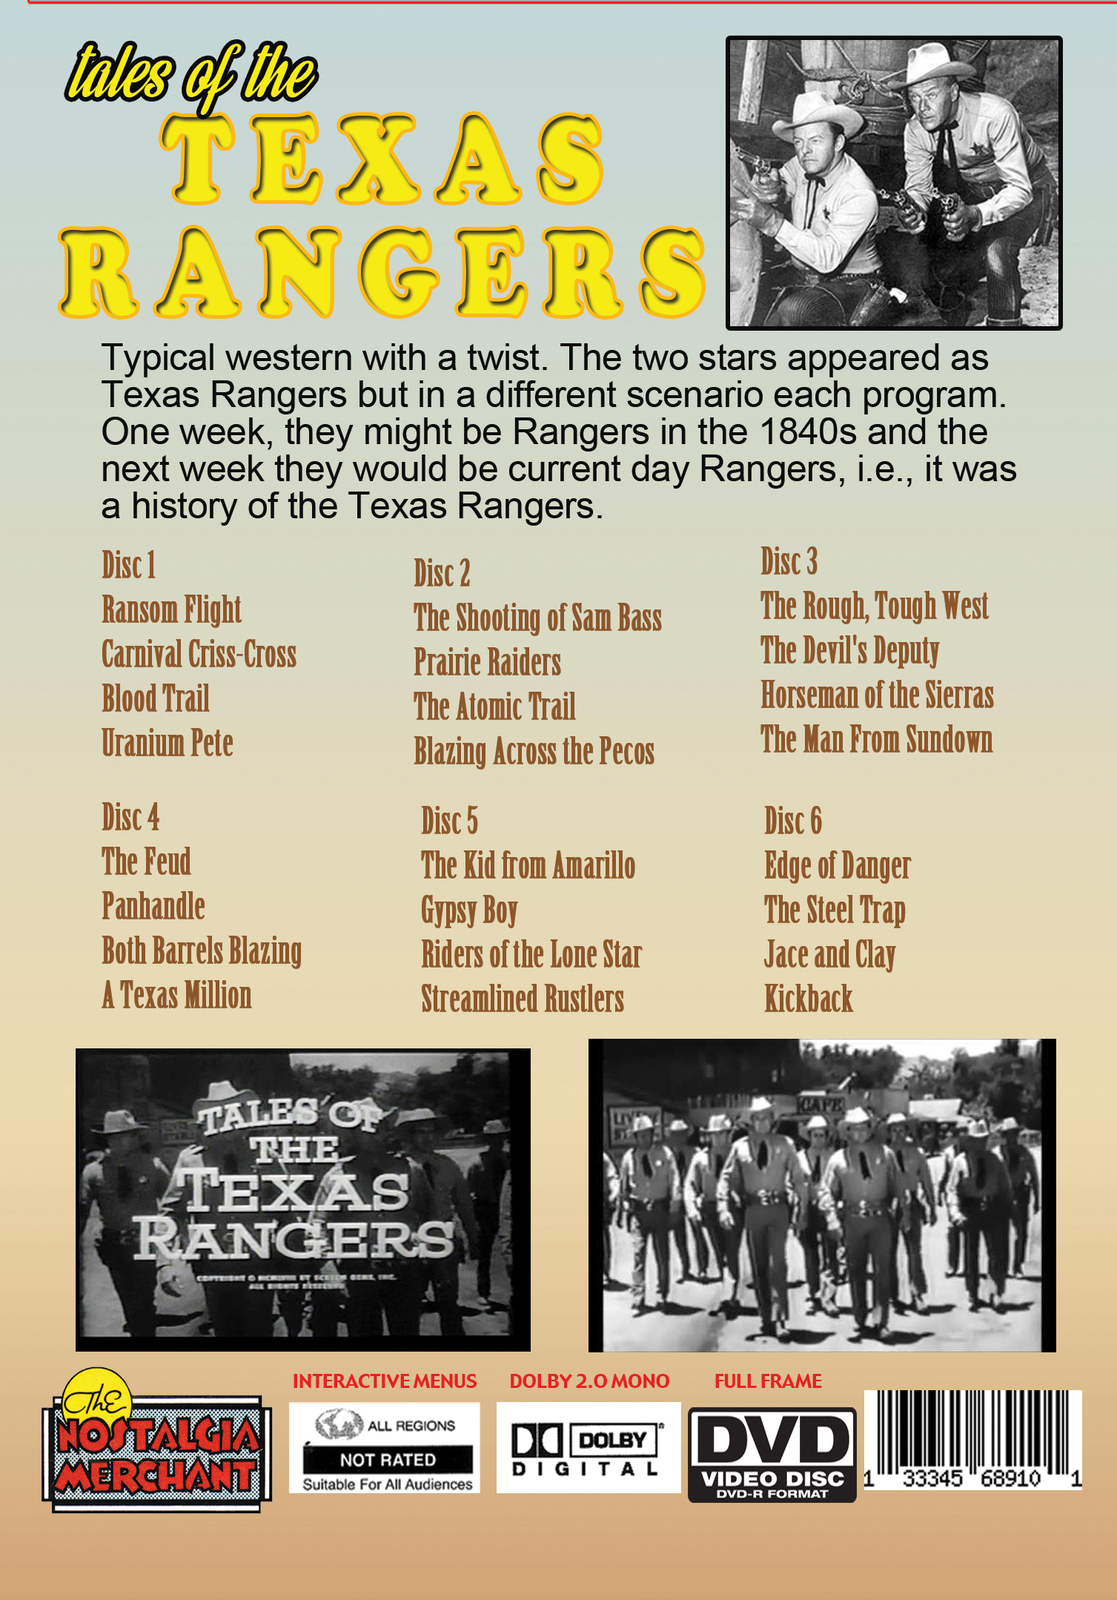 Tales of the Texas Rangers TV Collection